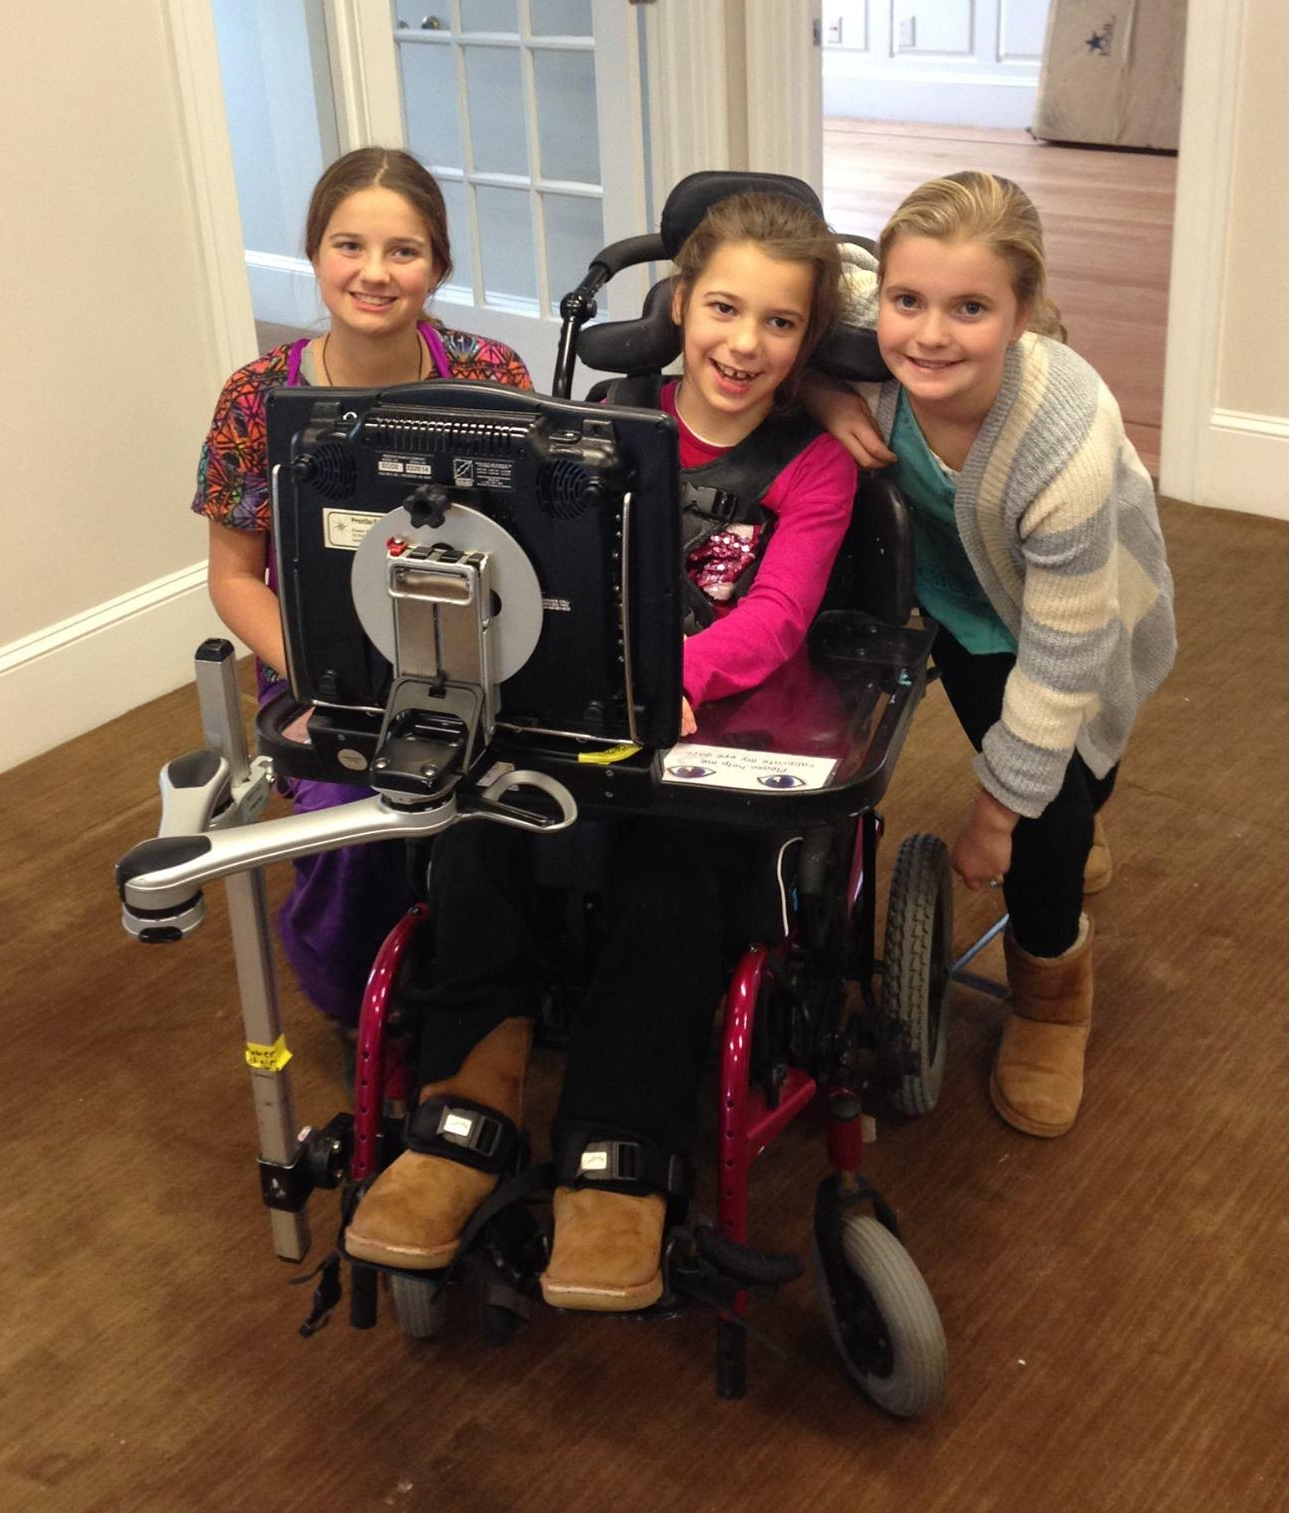 A young girl smiles seated in her powerchair facing a monitor and flanked by her two sisters, also smiling.